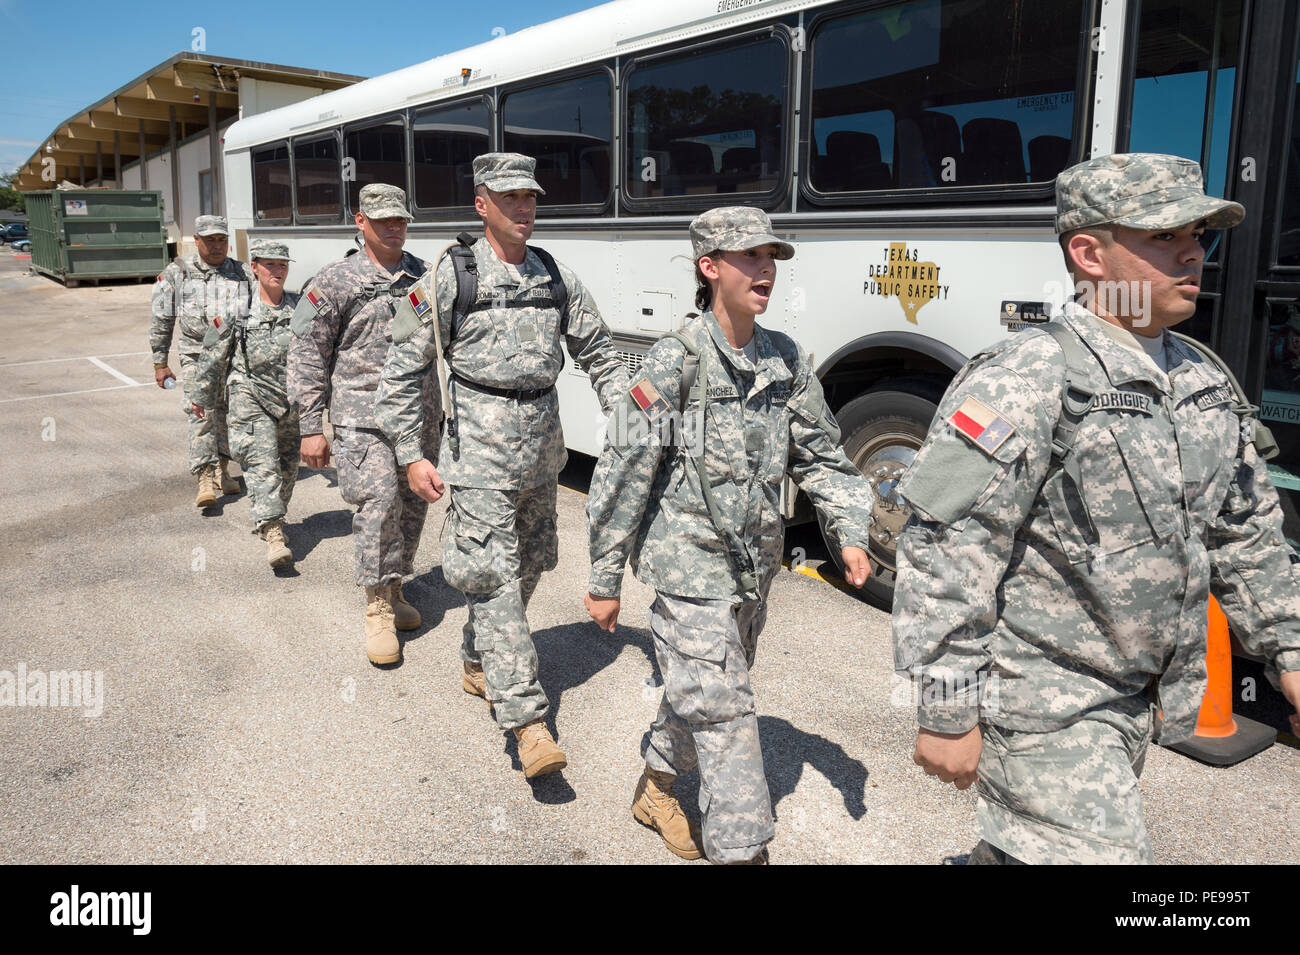 texas-state-guardsman-pvt-angeline-sanchez-calls-cadence-as-part-of-the-drill-and-ceremony-portion-of-the-2nd-regiments-regional-basic-orientation-training-phase-ii-held-in-austin-texas-sept-19-2015-rbot-is-held-twice-a-year-in-different-areas-across-the-state-to-teach-new-state-guardsmen-military-customs-basic-first-aid-and-cpr-drill-and-ceremony-land-navigation-and-radio-communication-skills-the-training-is-broken-up-into-two-phases-during-monthly-drills-us-army-national-guard-photo-by-sgt-1st-class-malcolm-mcclendon-PE995T.jpg